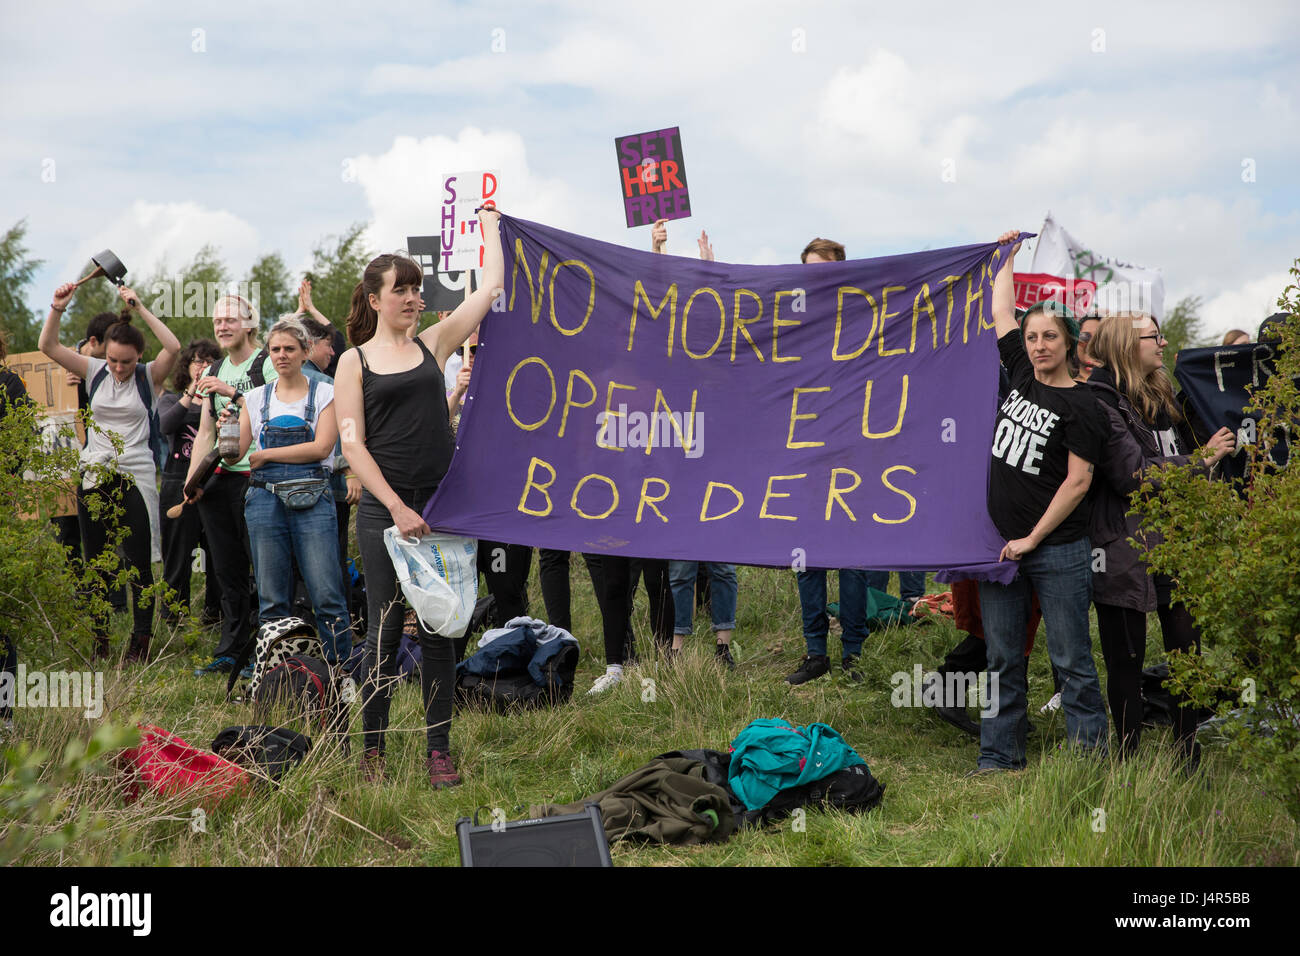 Milton Ernest, UK. 13th May, 2017. Campaigners against immigration detention communicate with detainees inside Yarl's - Stock Image